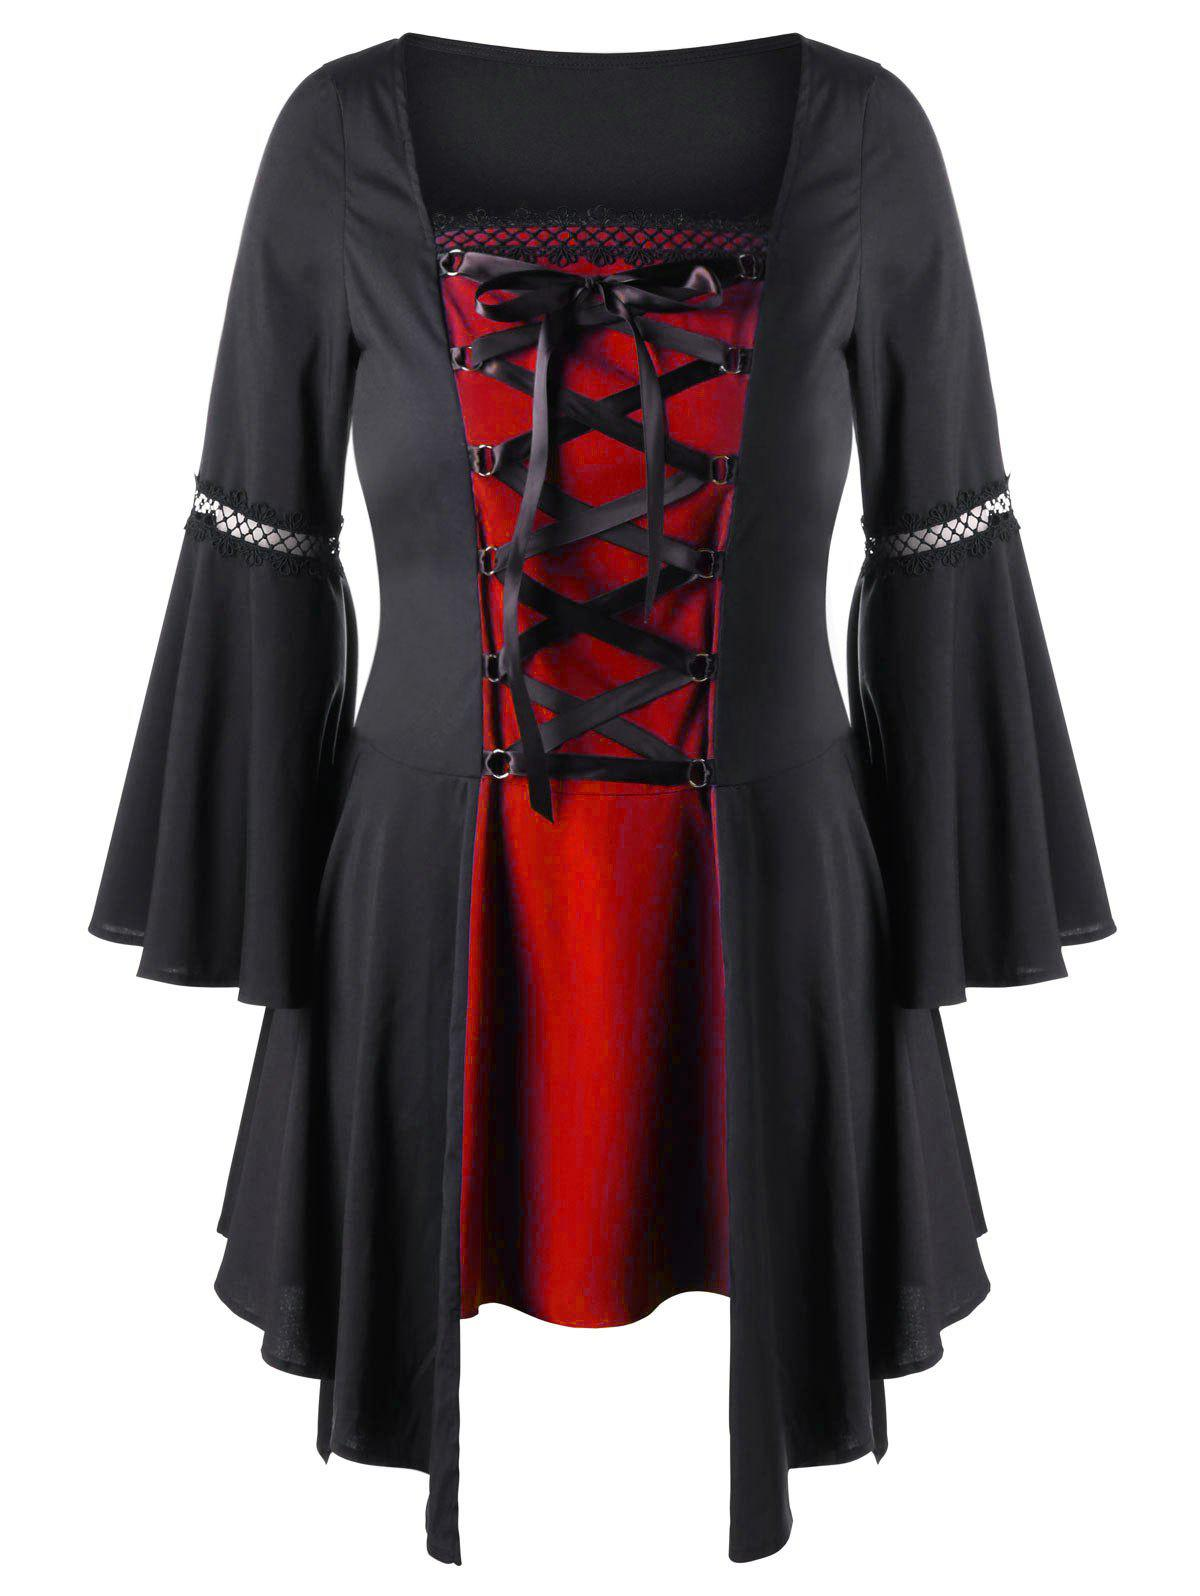 Plus Size Lace Up Handkerchief Hem TopWOMEN<br><br>Size: 5XL; Color: RED WITH BLACK; Material: Polyester; Shirt Length: Long; Sleeve Length: Full; Collar: Square Neck; Style: Gothic; Season: Fall,Spring; Pattern Type: Solid; Weight: 0.3500kg; Package Contents: 1 x Top;